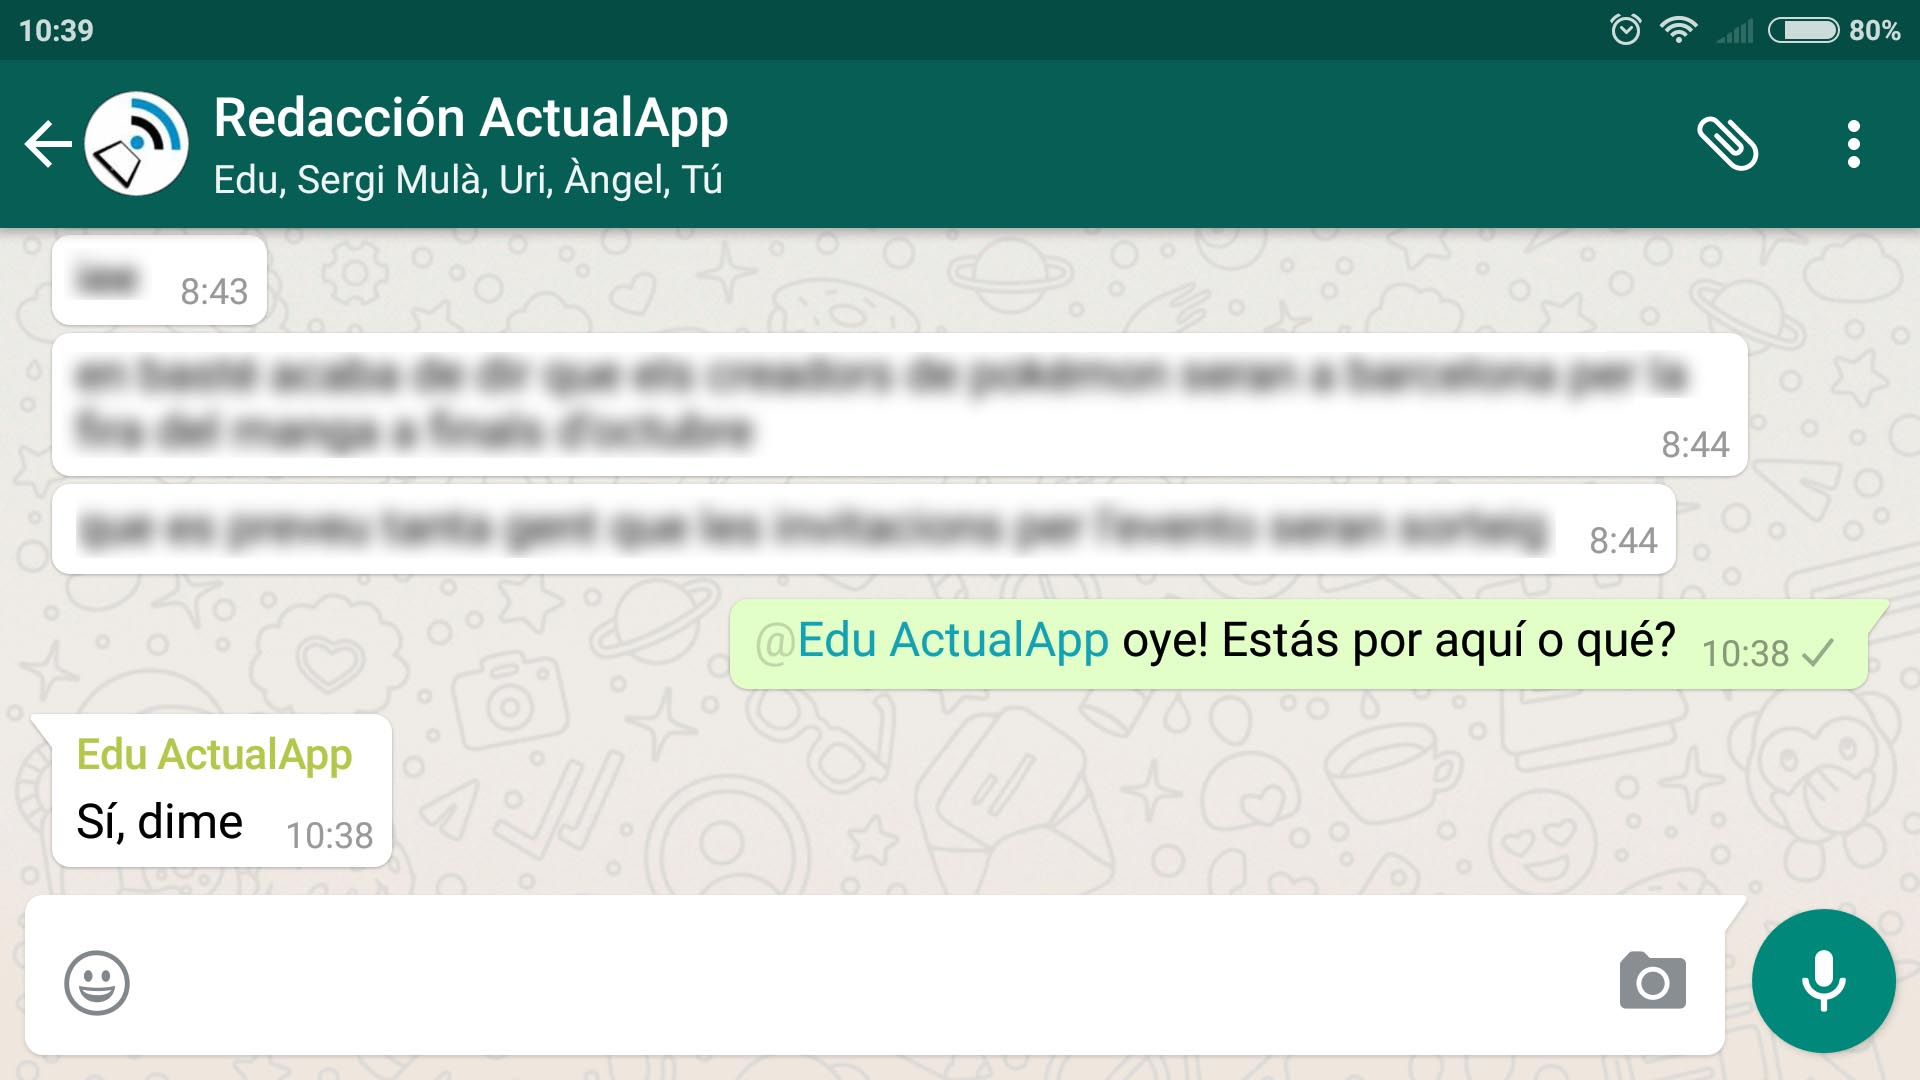 whatsapp-menciones-screenshot_2016-09-20-10-39-32-935_com-whatsapp-copia